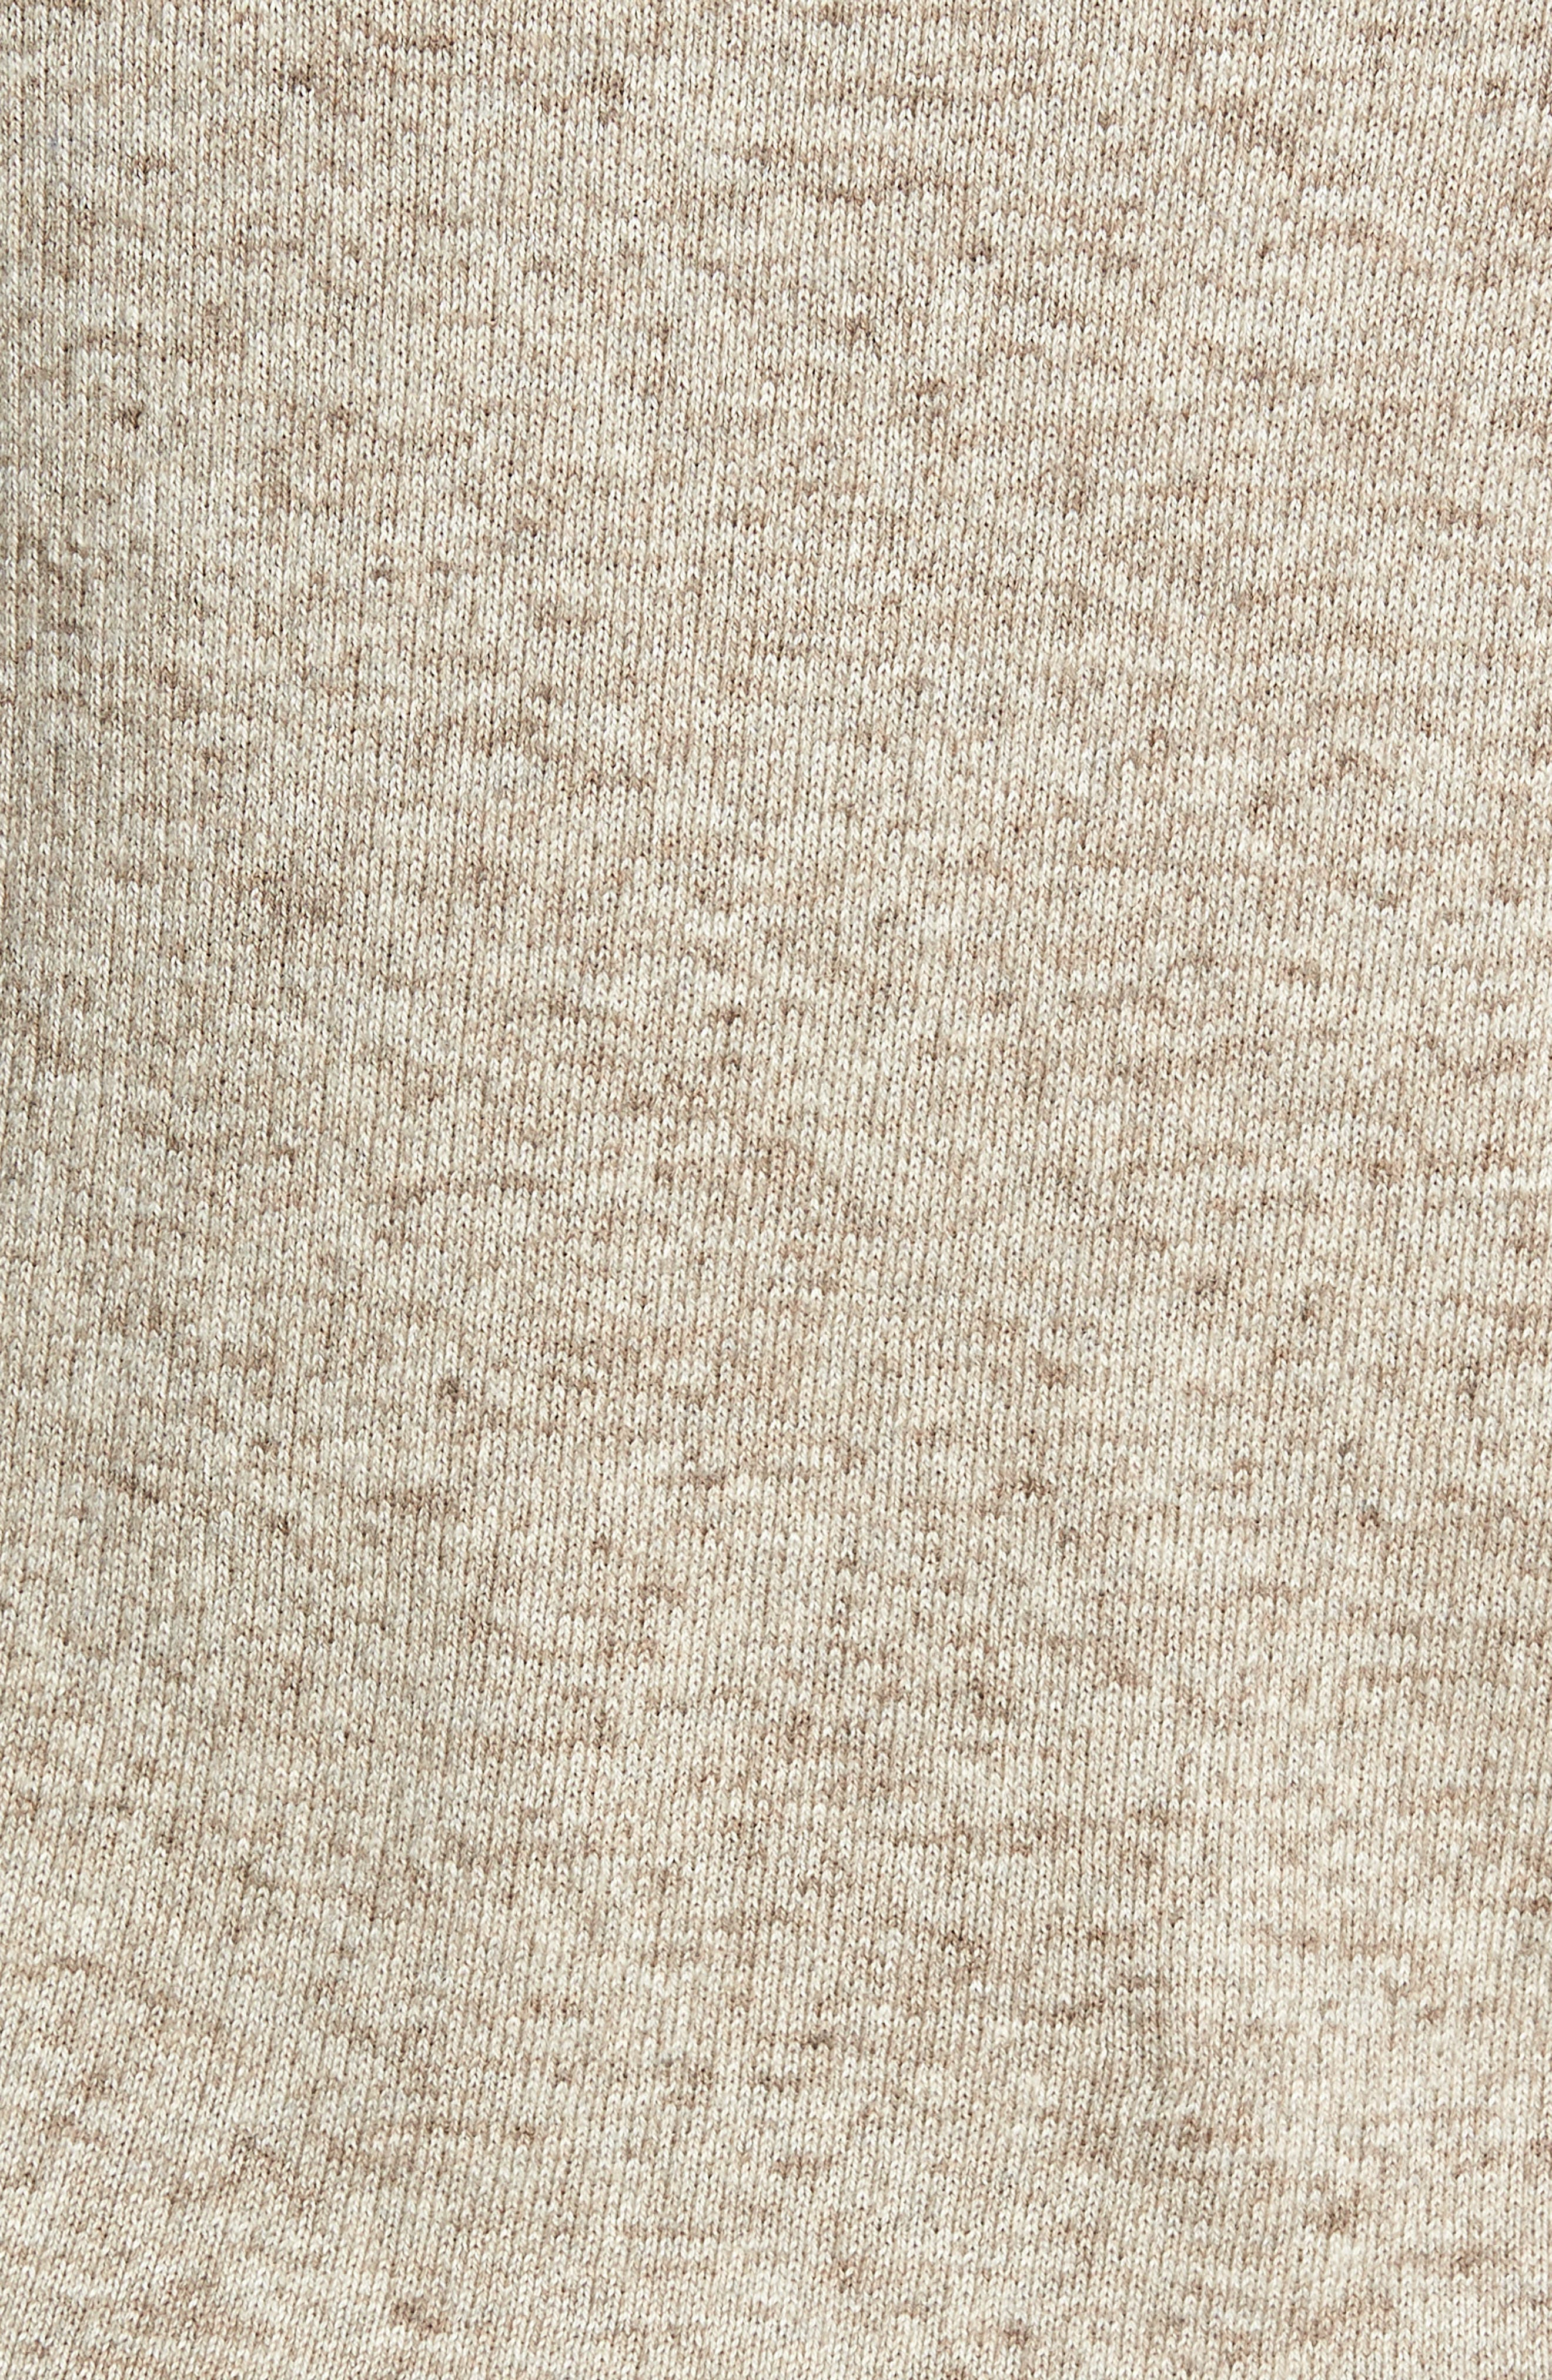 Cotton & Wool Henley Sweater,                             Alternate thumbnail 5, color,                             RYE